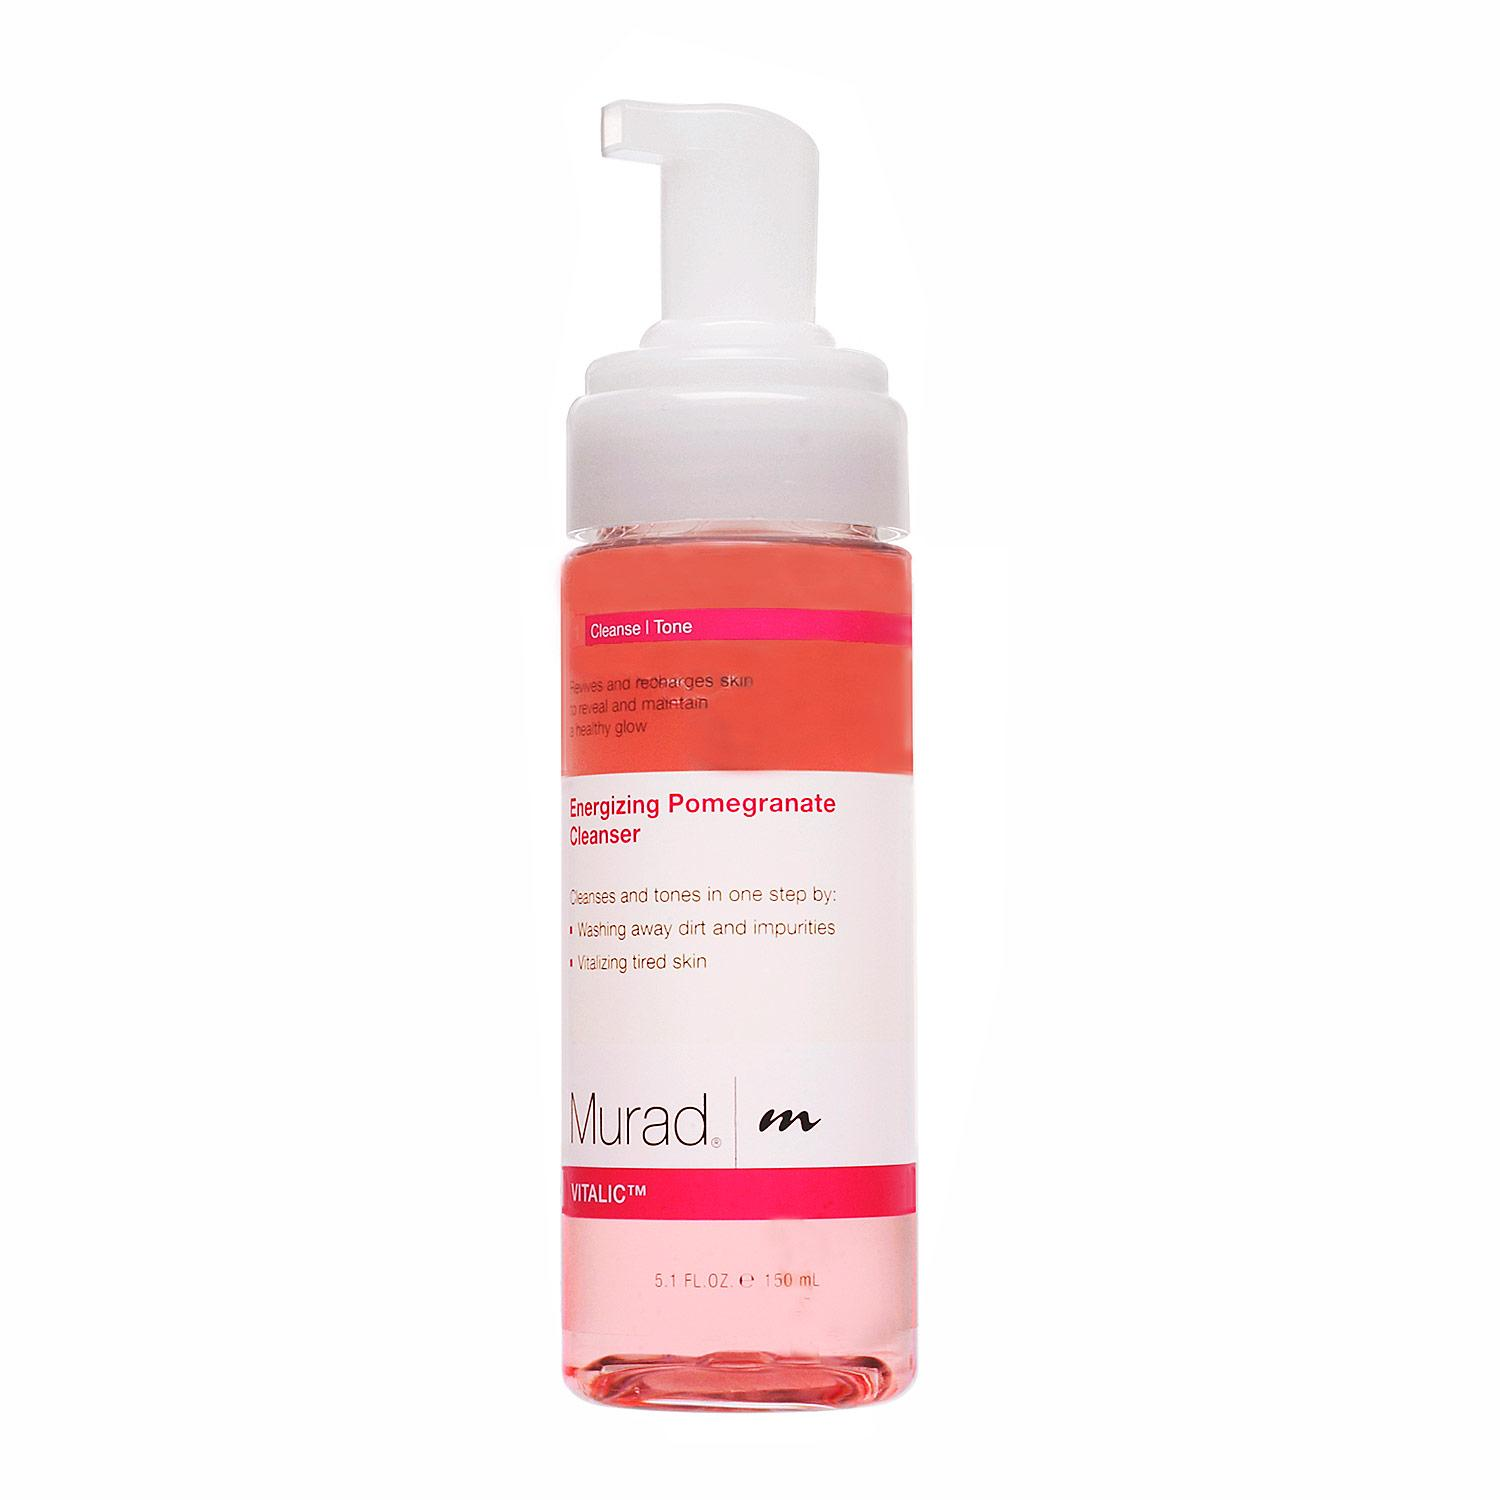 Vitalic Energizing Pomegranate Cleanser